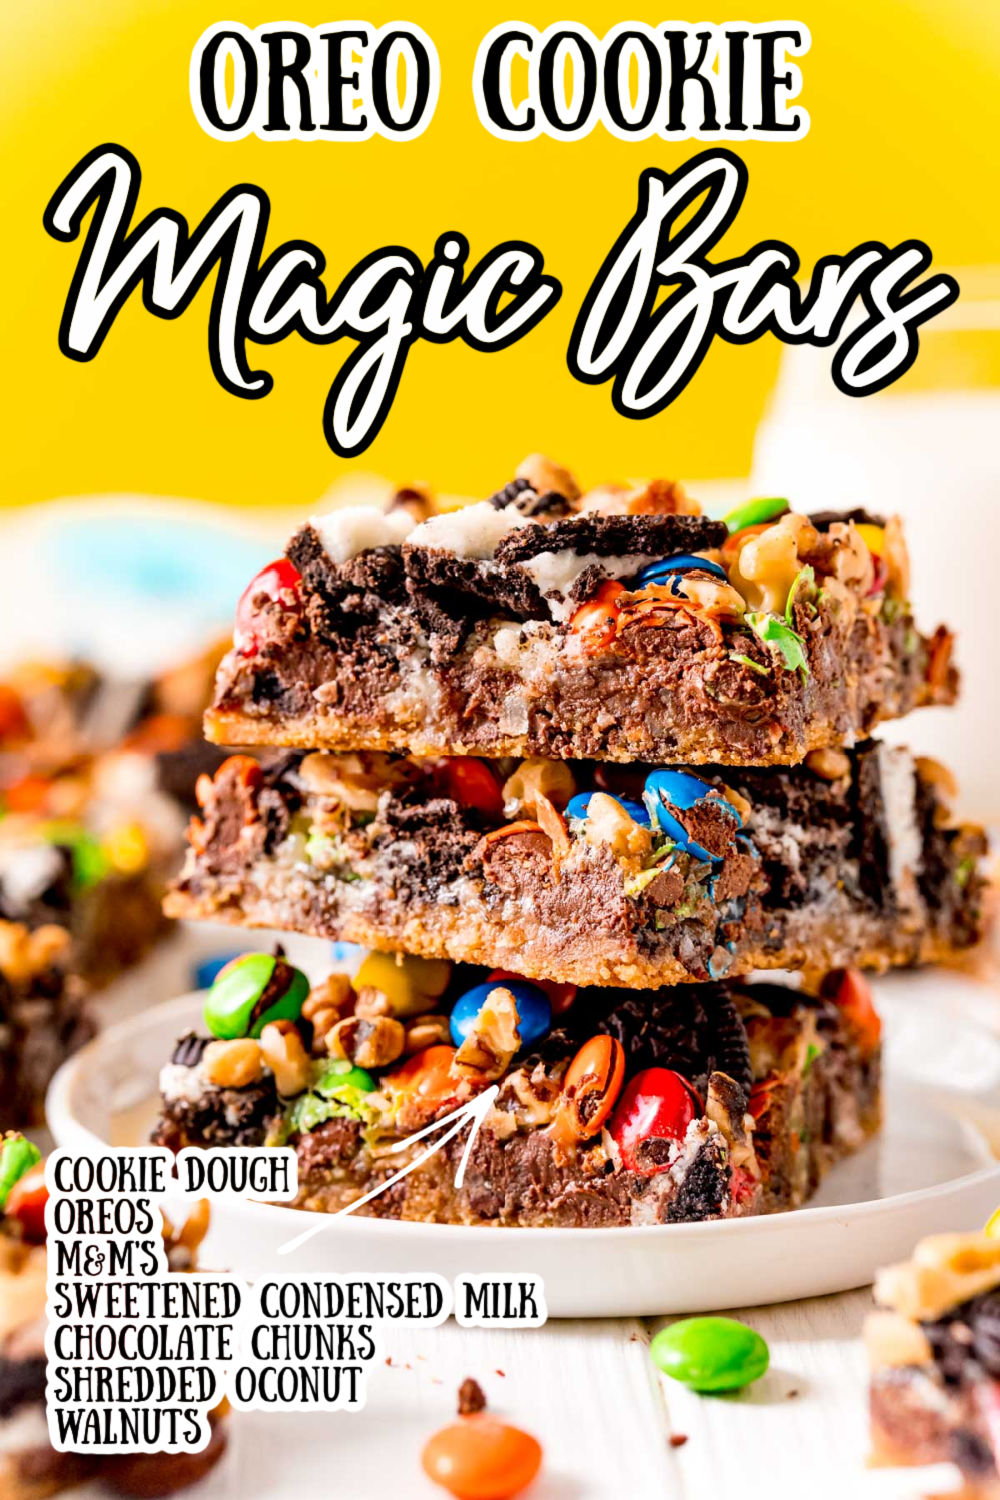 These Oreo Magic Bars have a refrigerated cookie dough base and are overflowing with Oreo cookies, chocolate chunks, coconut, nuts, and M&M's for a rich, tasty, and easy dessert! via @sugarandsoulco